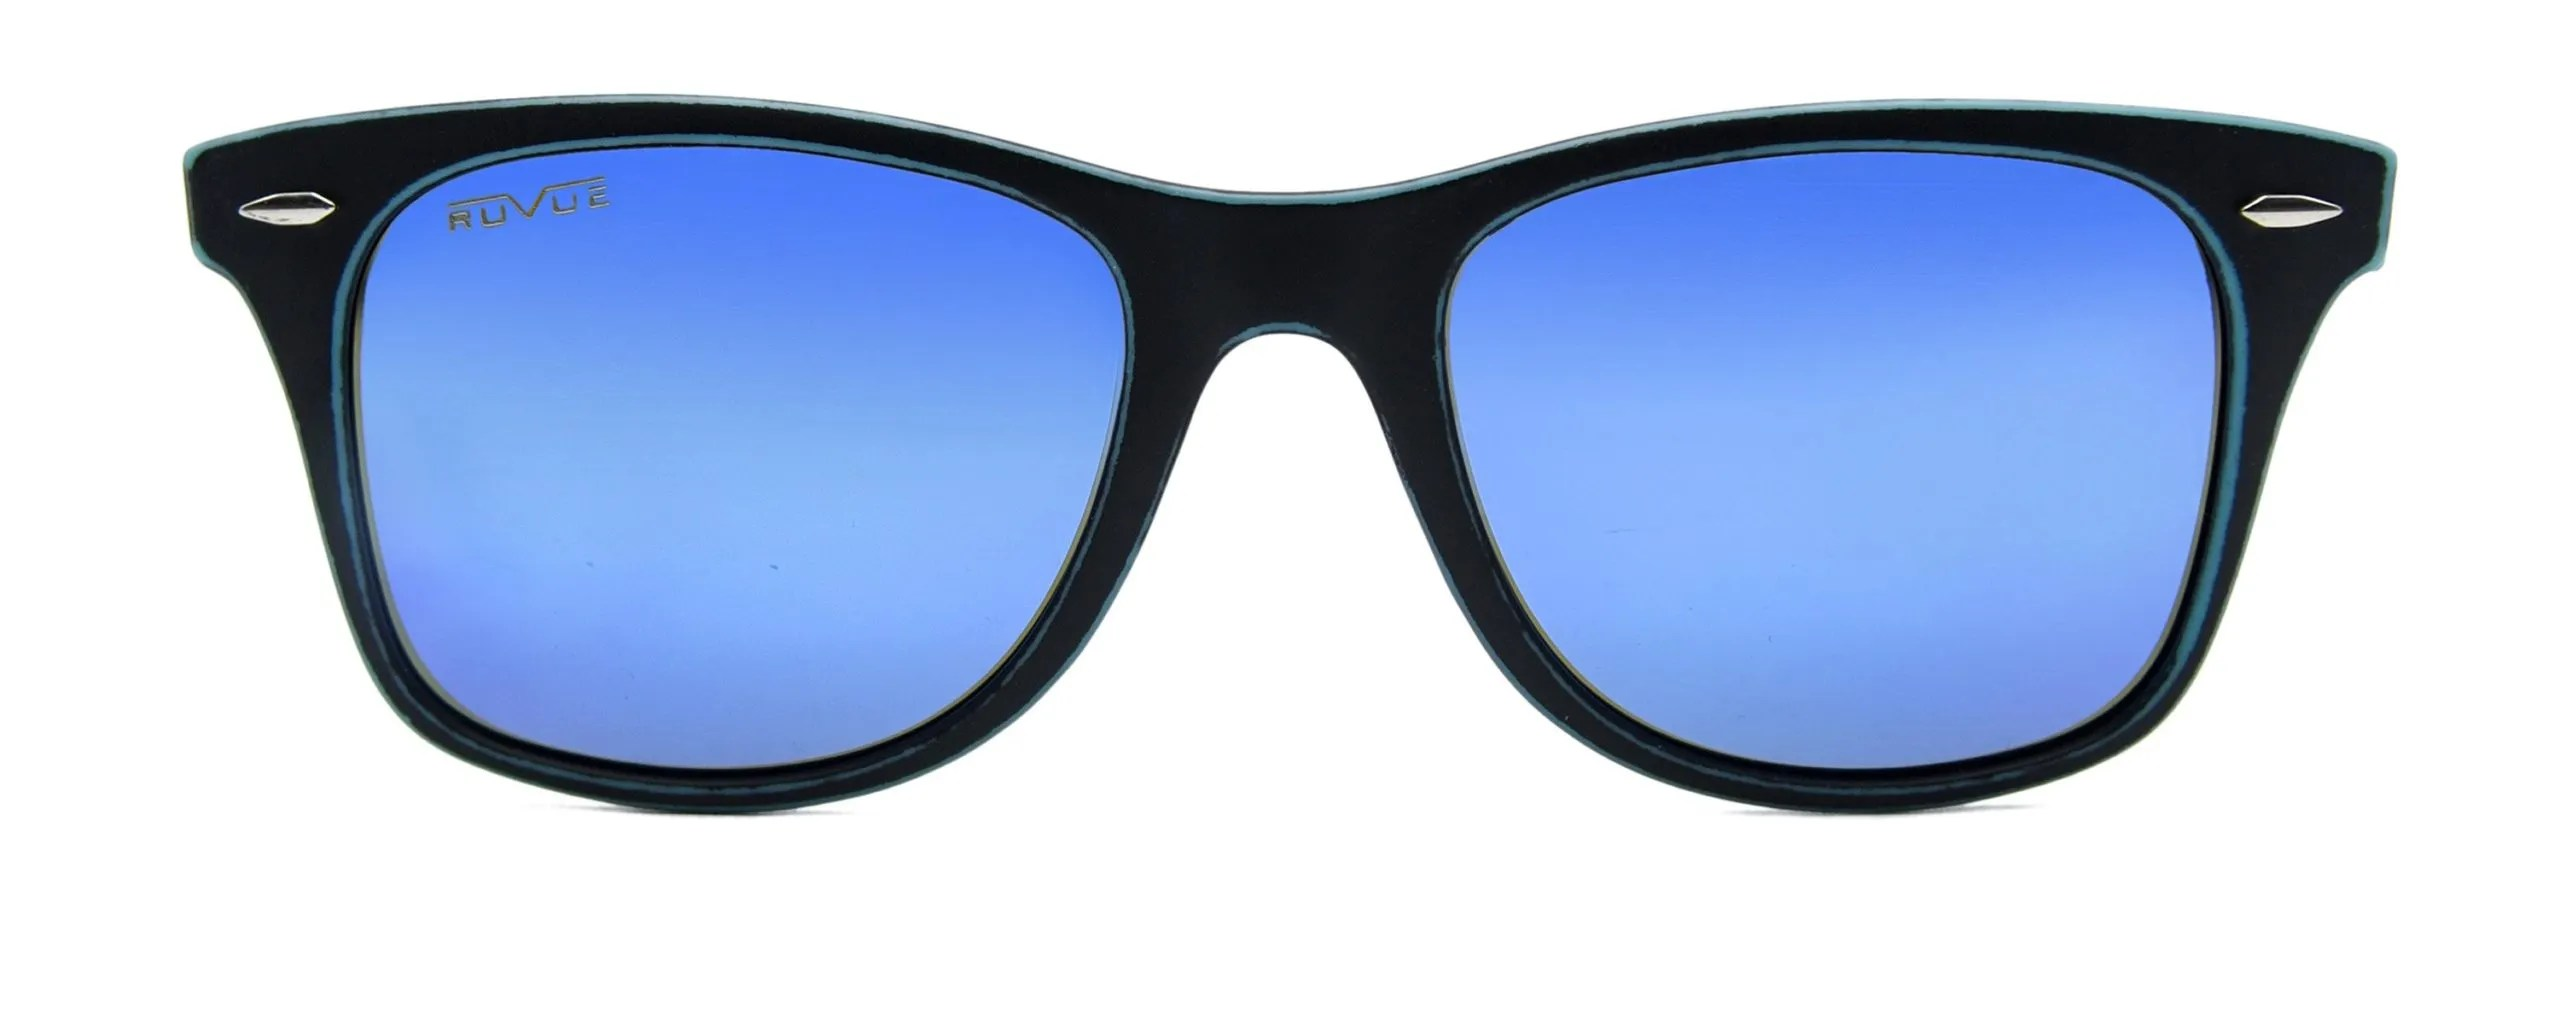 Jude - Matte Black - Blue Polarized Mirror Lenses - Front